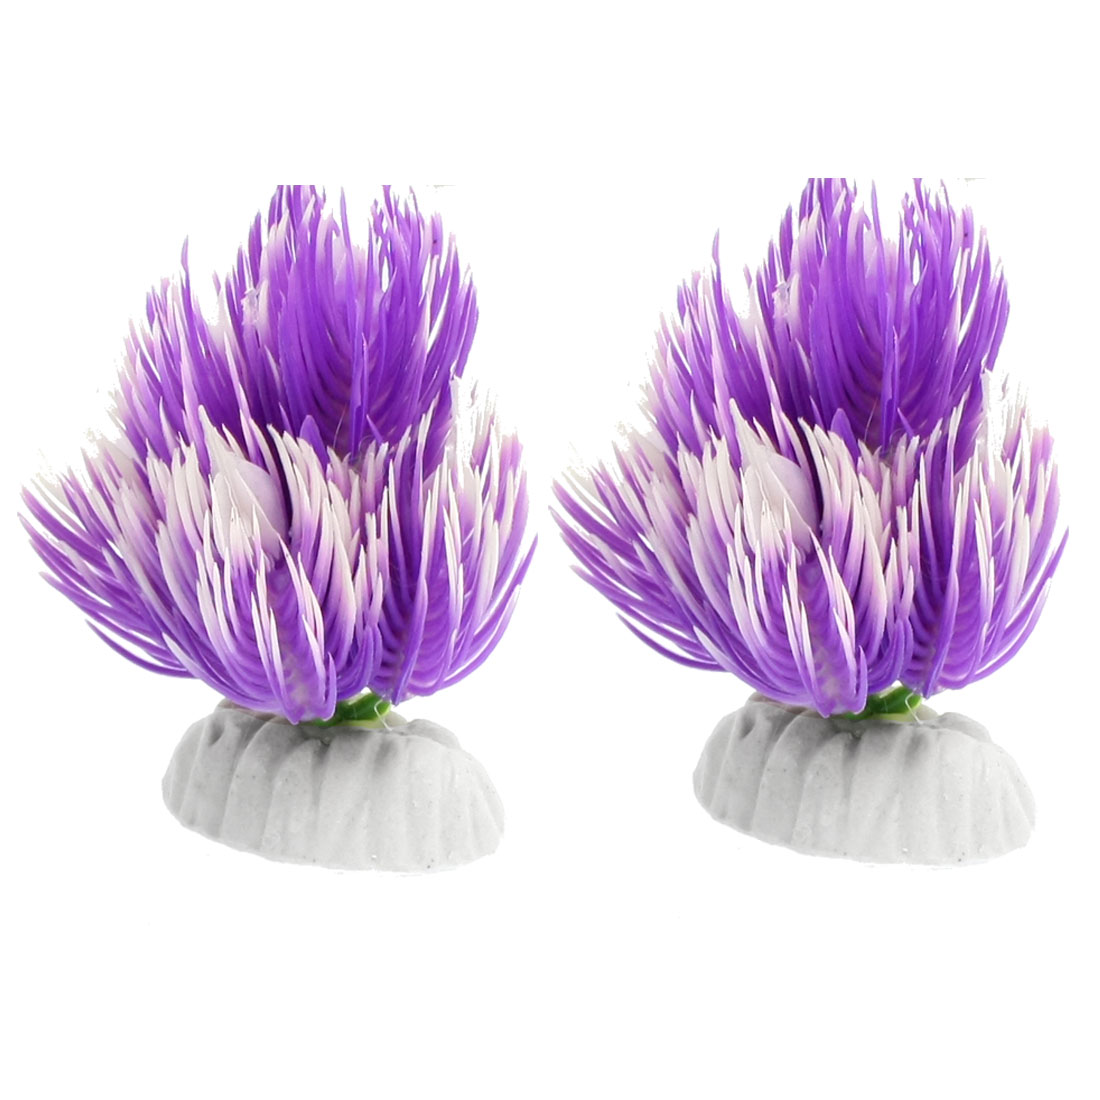 Aquarium Ornament Decoration Purple White Plastic Plant Grass 2 Pcs